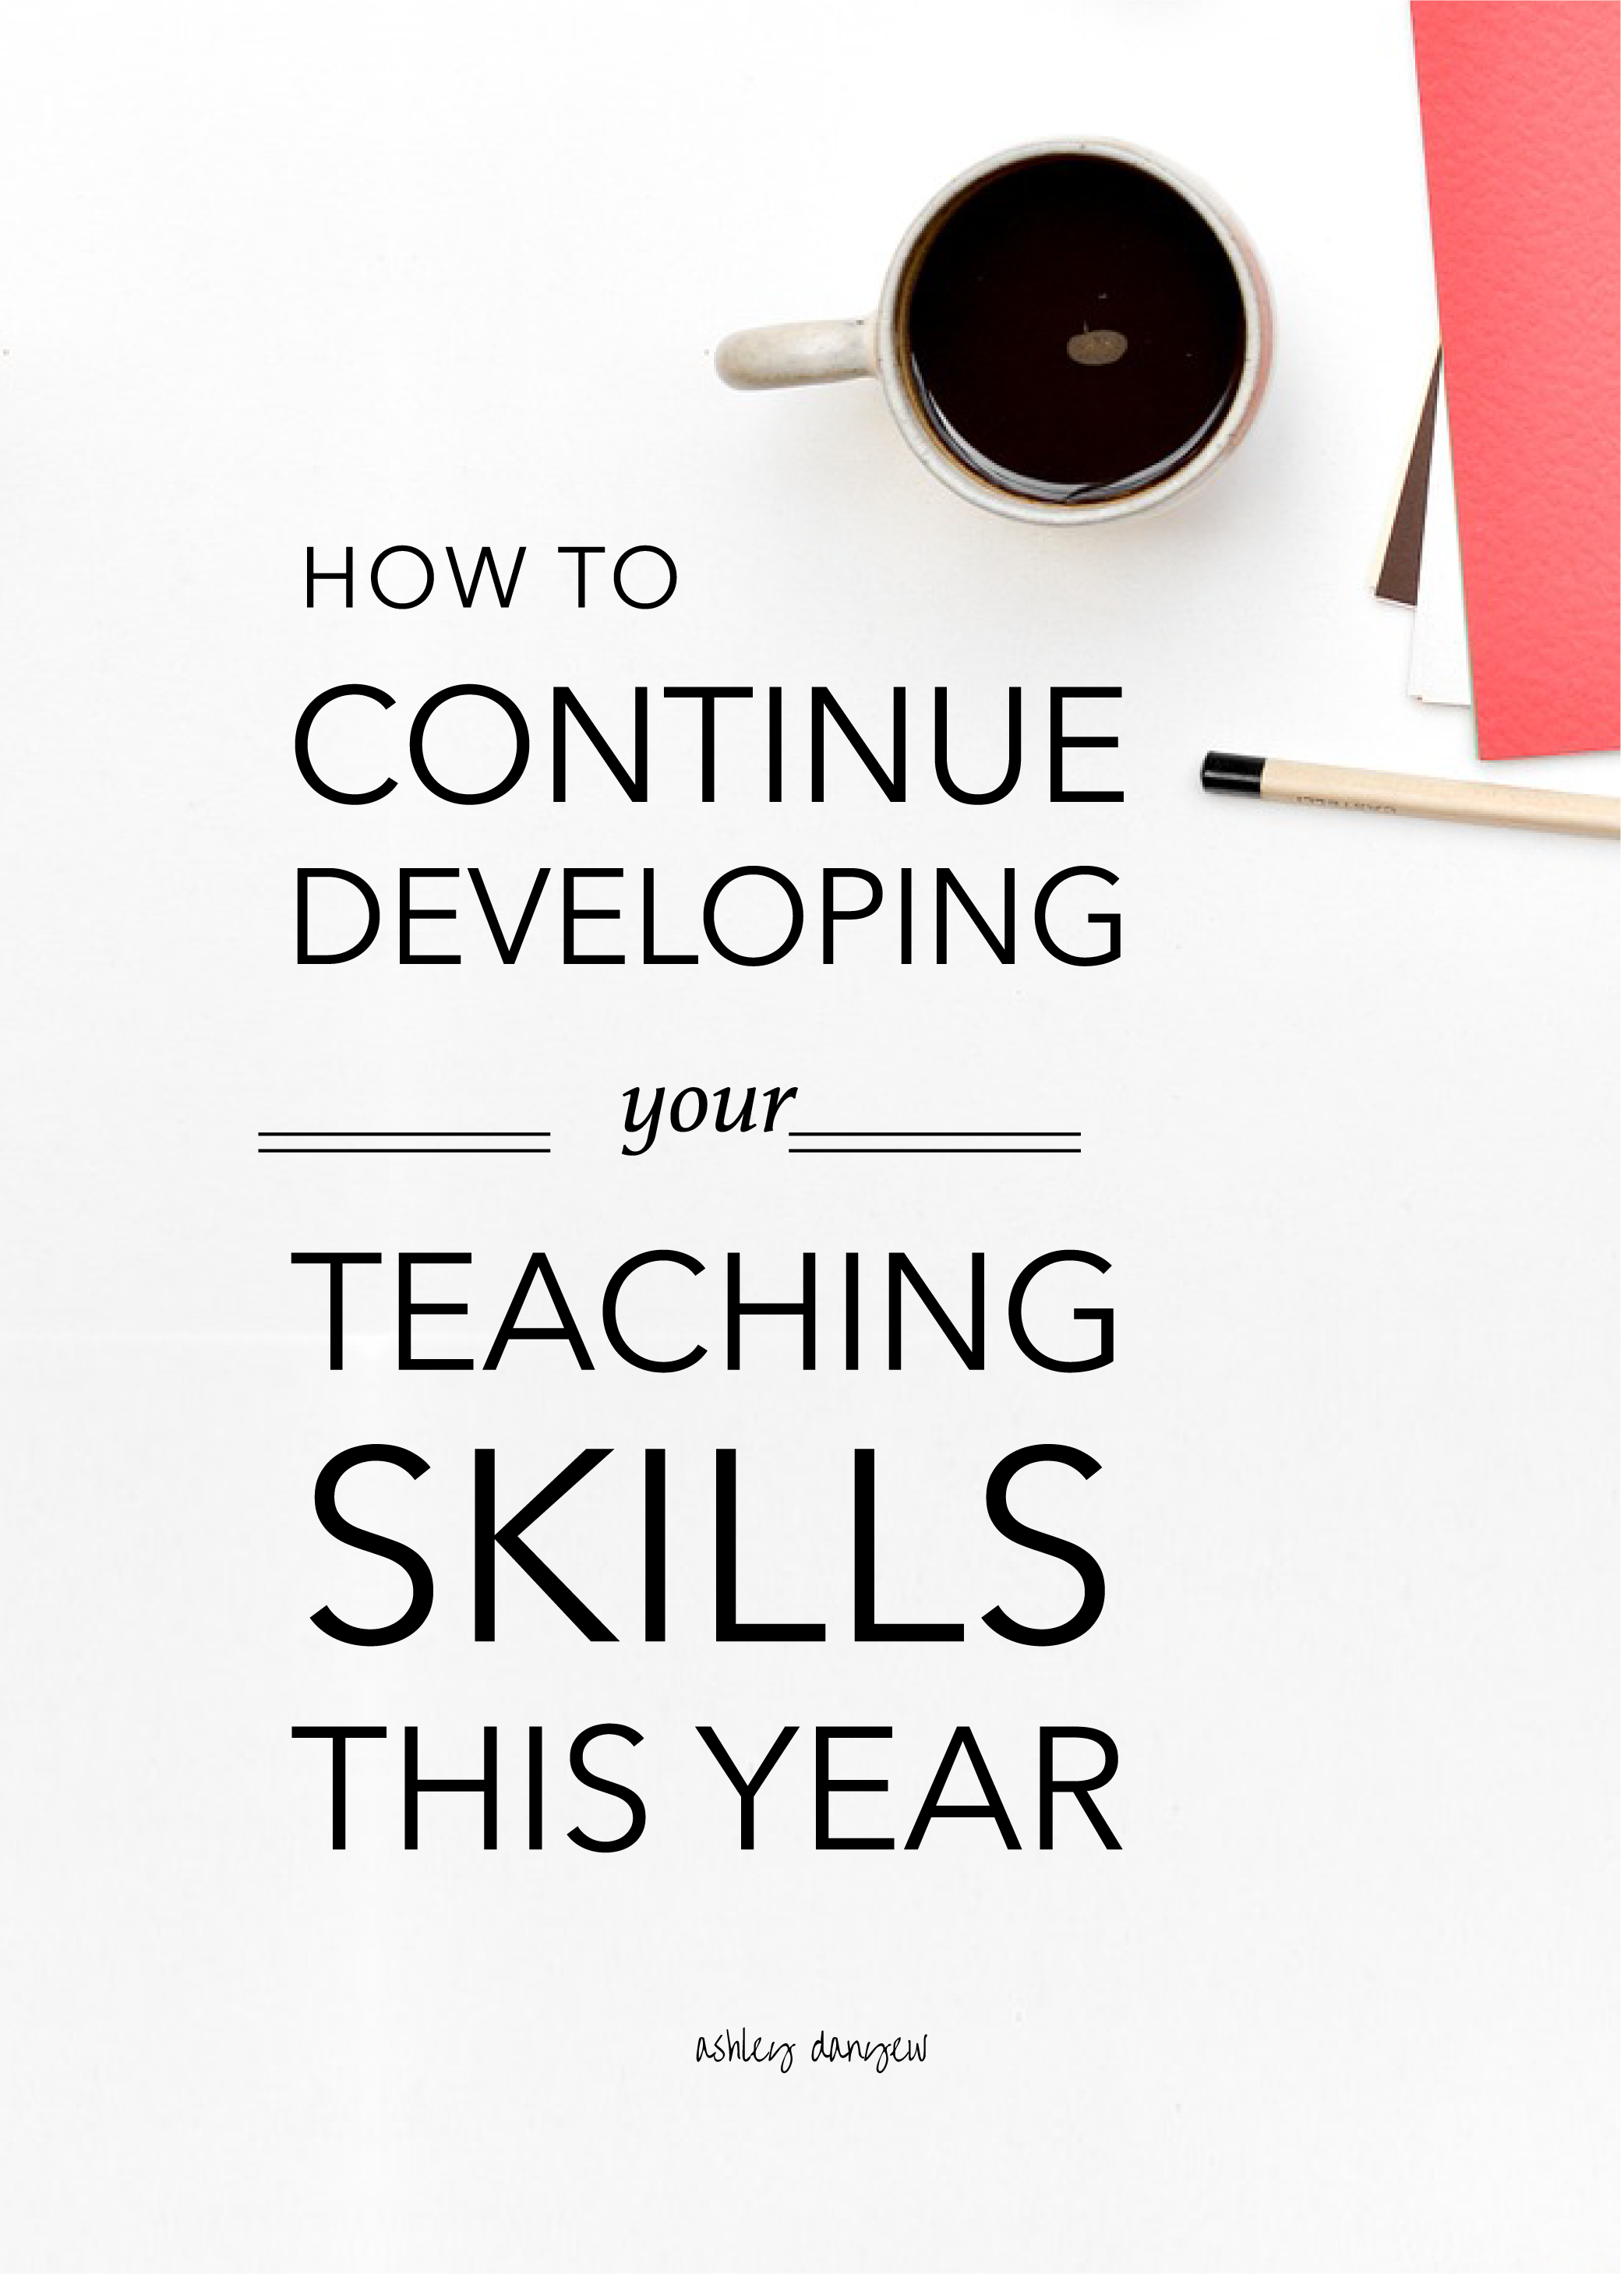 How to Continue Developing Your Teaching Skills This Year-02.png